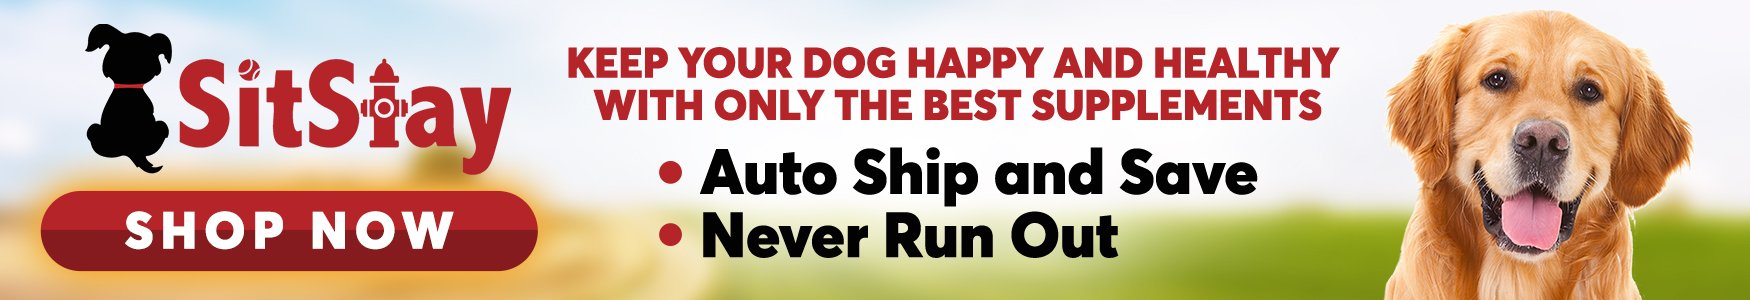 SitStay AutoShip and Save, Never Run out